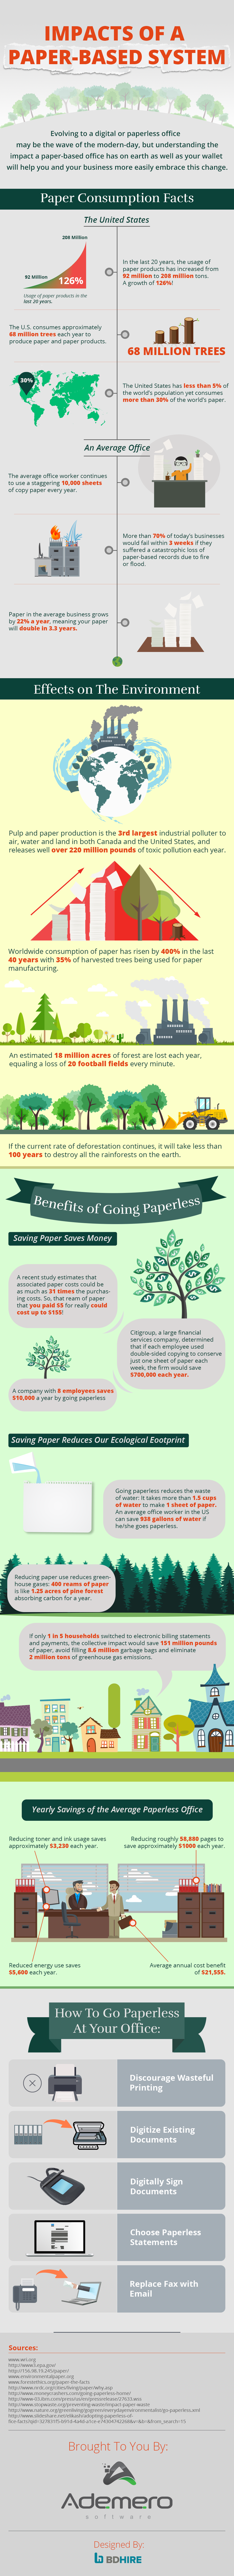 Impacts of a Paper-Based System